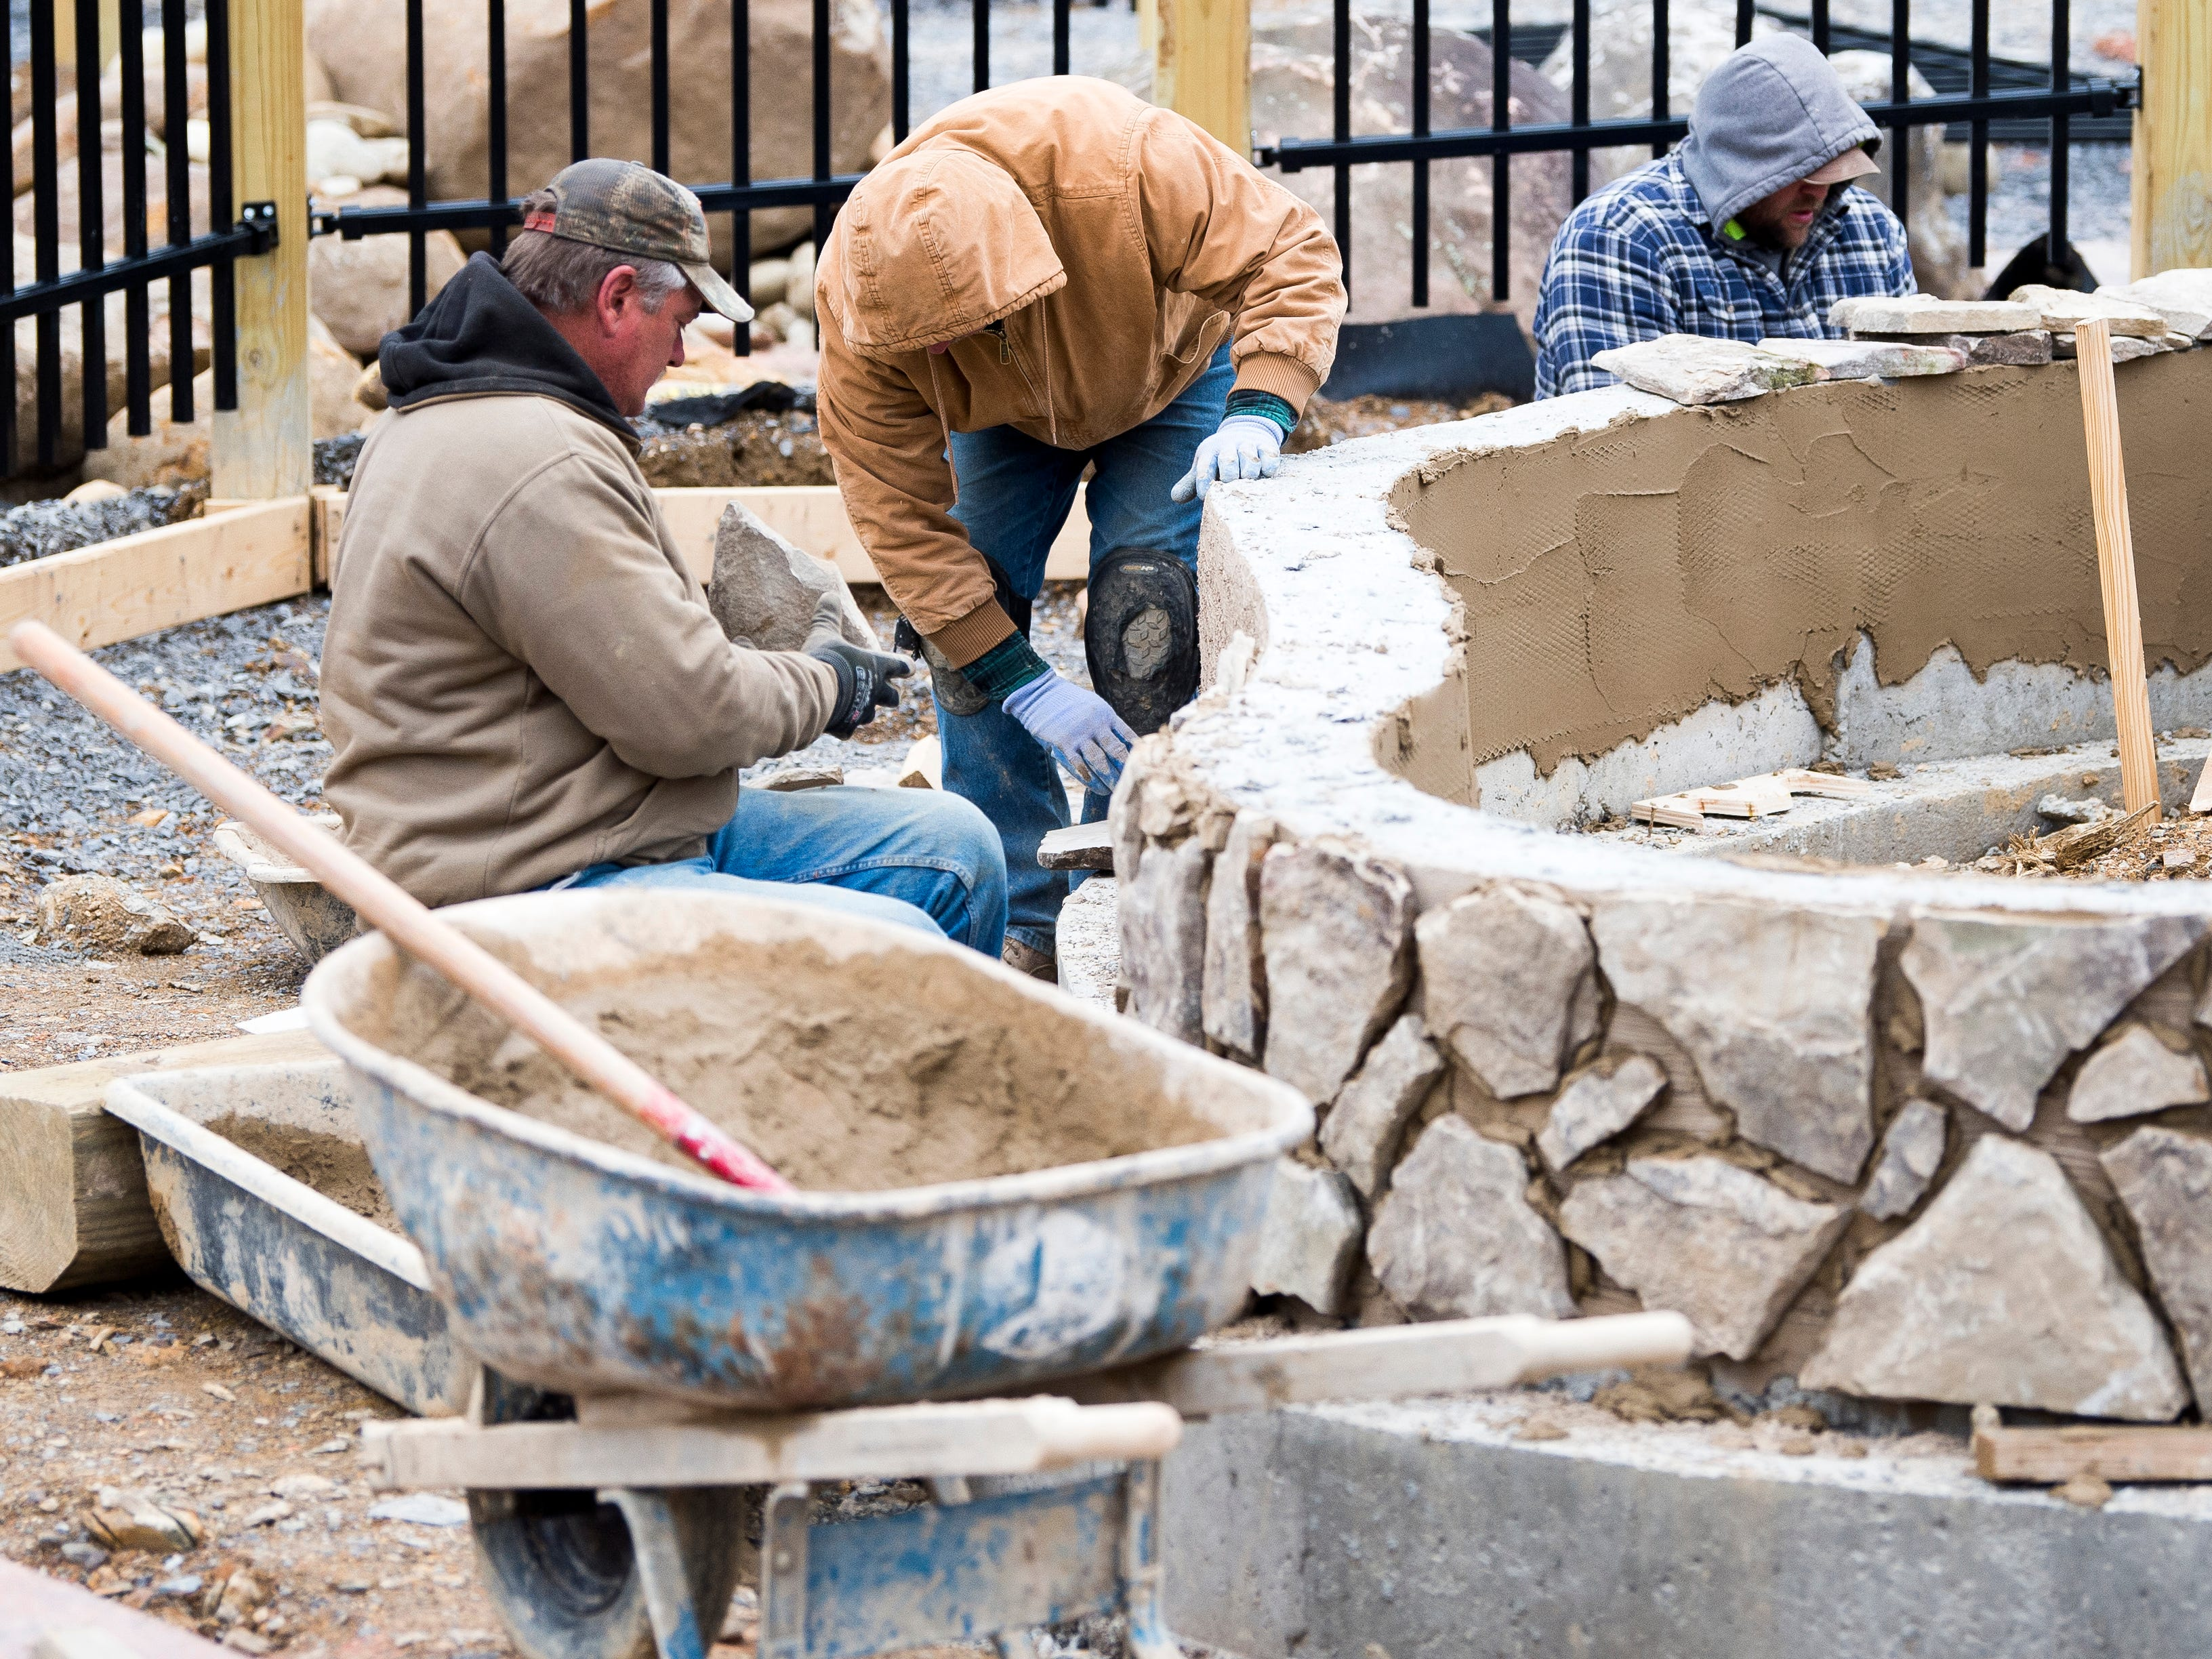 Construction workers put in rock tiles on a water feature in Dollywood's new Wildwood Grove area of the park on Tuesday, February 19, 2019.